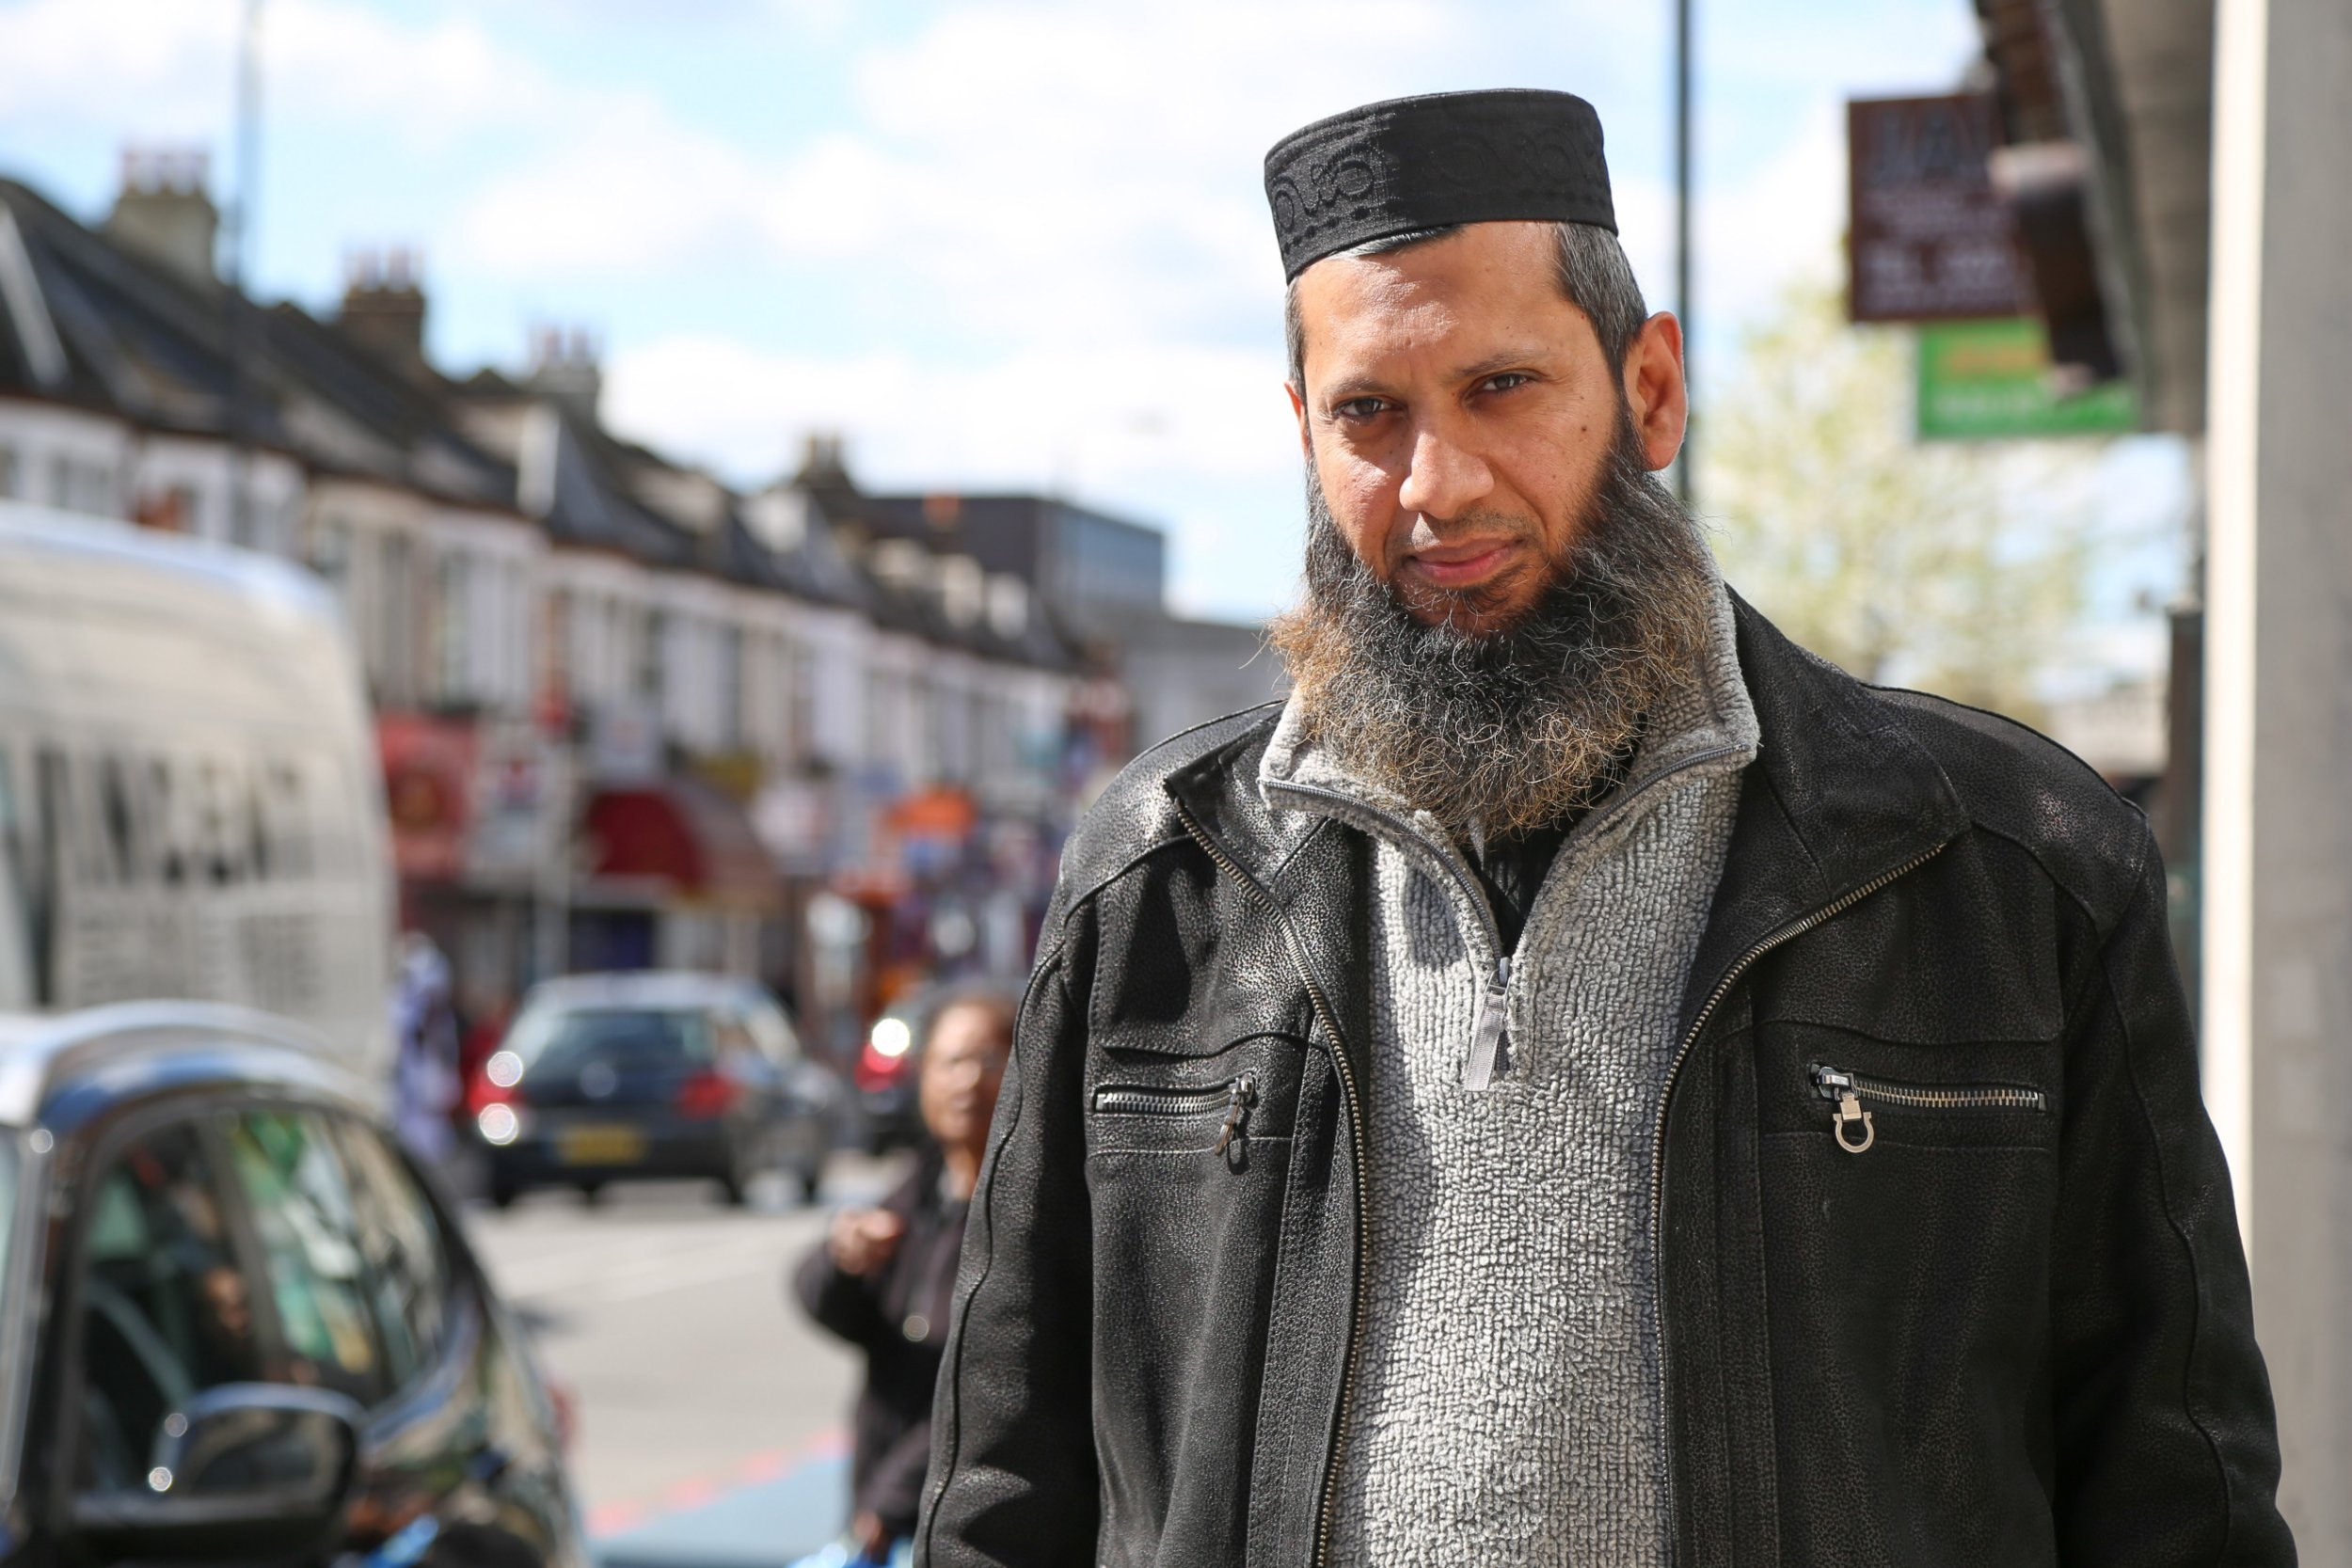 LONDON, UNITED KINGDOM - APRIL 28: A London-based Muslim preacher Suliman Gani is seen during an exclusive interview on in London, United Kingdom on April 28, 2016. In the exclusive interview with Anadolu Agency, Suliman Gani said he was shocked by Prime Minister David Camerons allegations, which he described as racist and Islamophobic. (Photo by Mehmet Ali Maybarskan/Anadolu Agency/Getty Images)